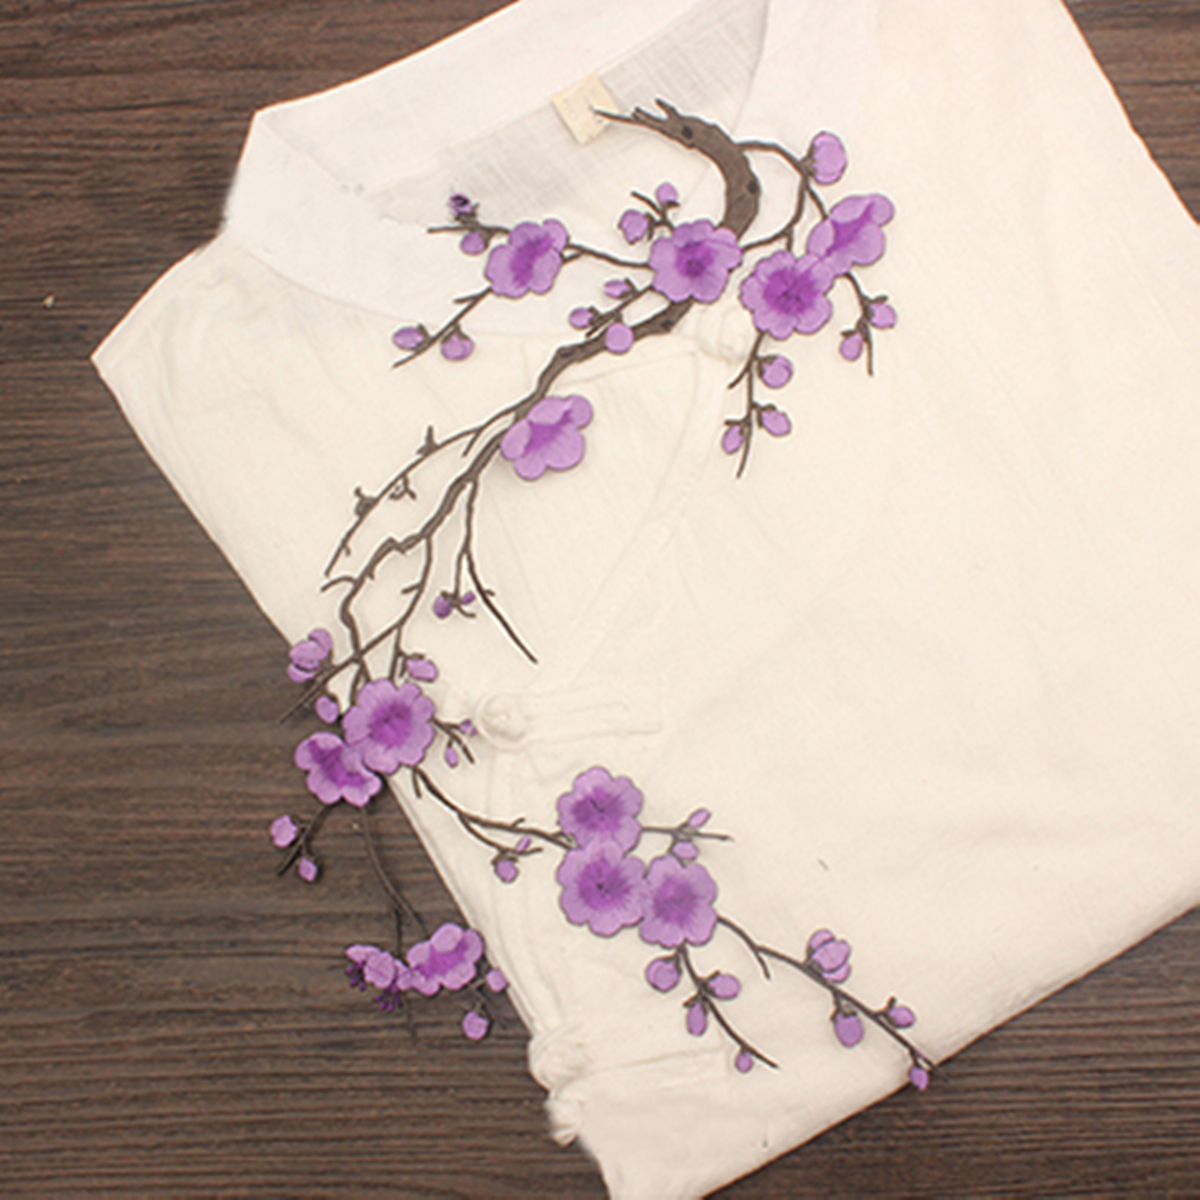 Meigar Cherry Blossom Sakura Flower Flower Applique Embroidery Patch Sticker Iron On Sew Cloth  Embroidery Patches ,Red color